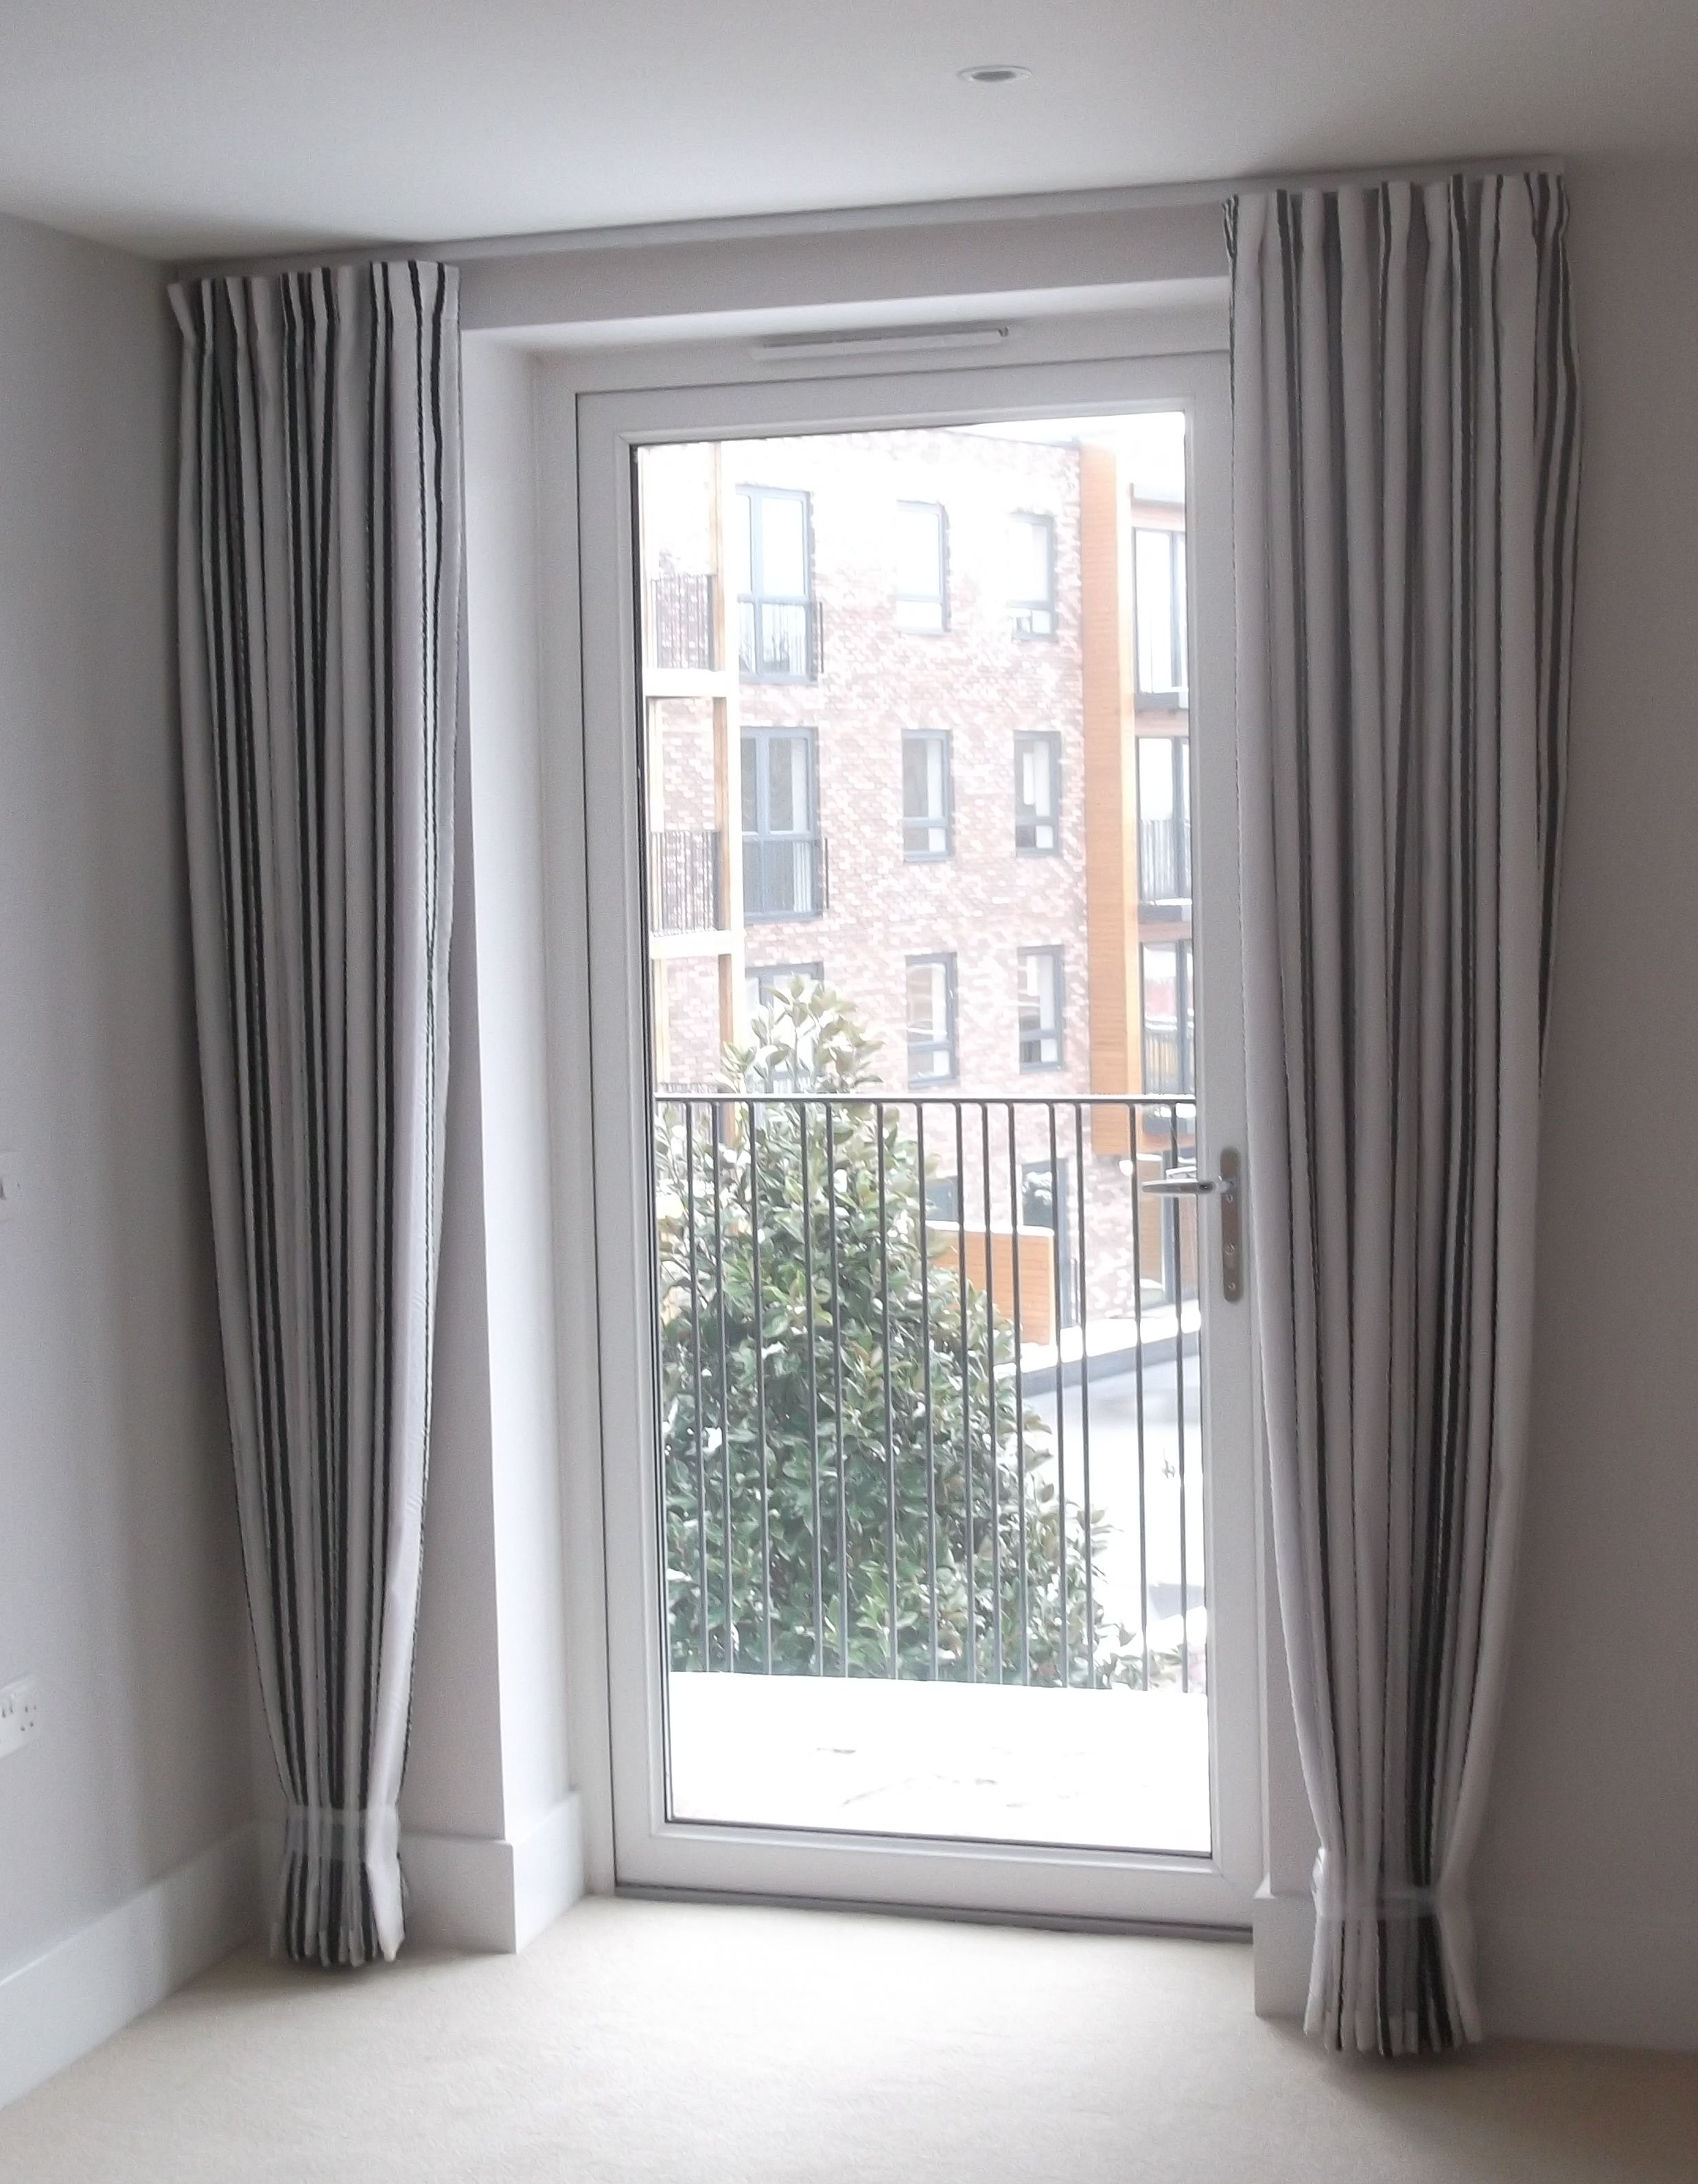 Curtains From Ceiling To Floor | www.energywarden.net